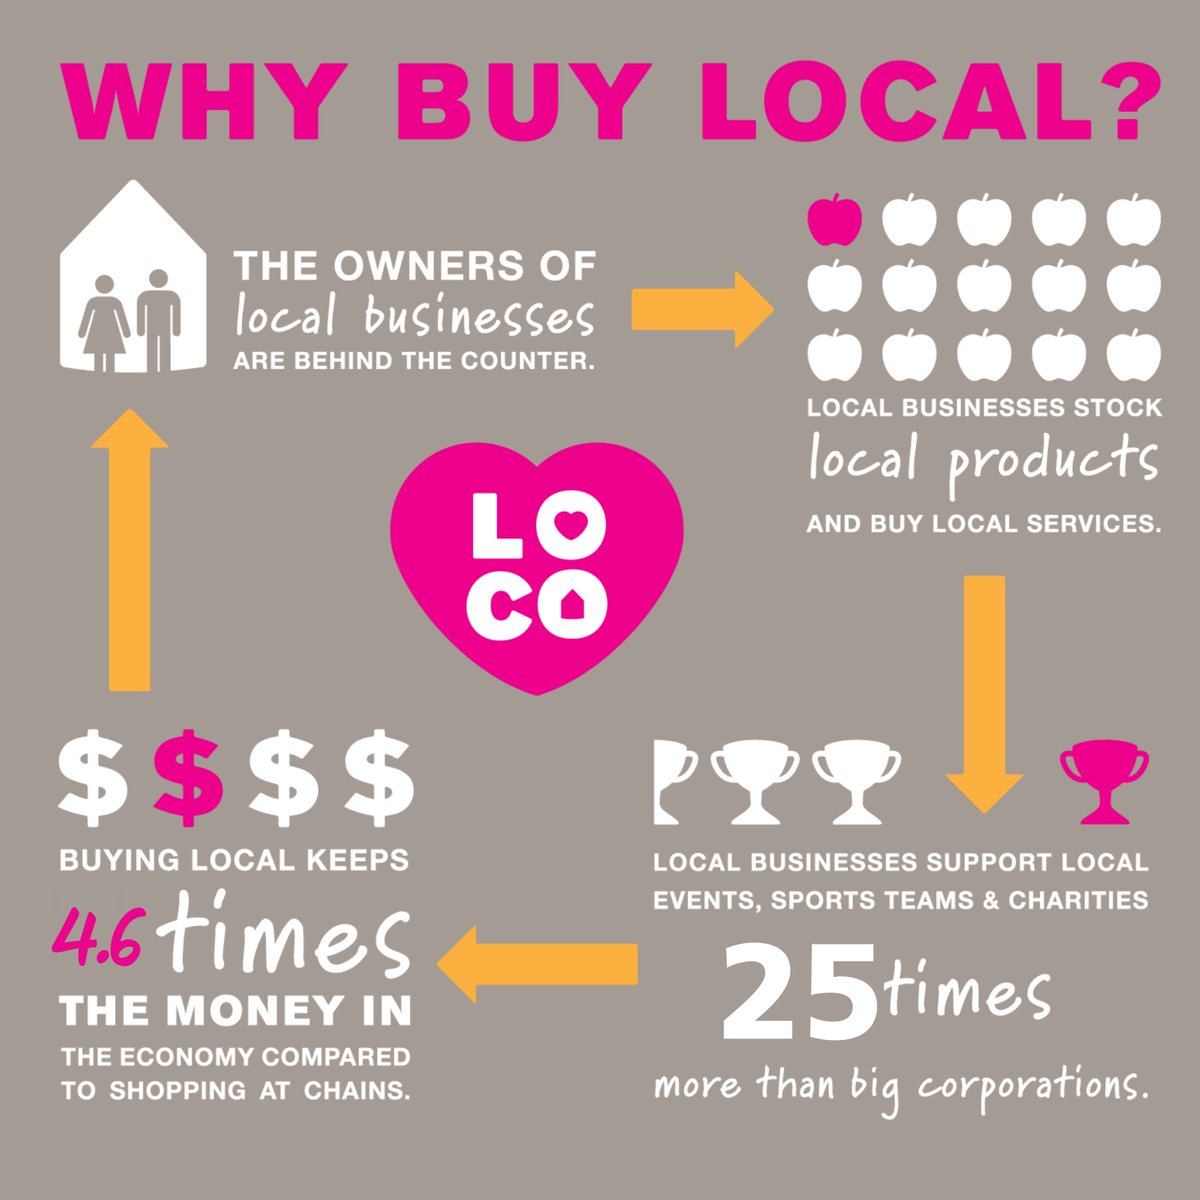 Local businesses build community! They buy local products, use local services, support local charities & the owners live here. They have 4.6X the economic impact. Our stories this month highlight how #Langley businesses support their community: https://t.co/HYbjtKkxc5 #BCBuyLocal https://t.co/YEt1DNMwCs